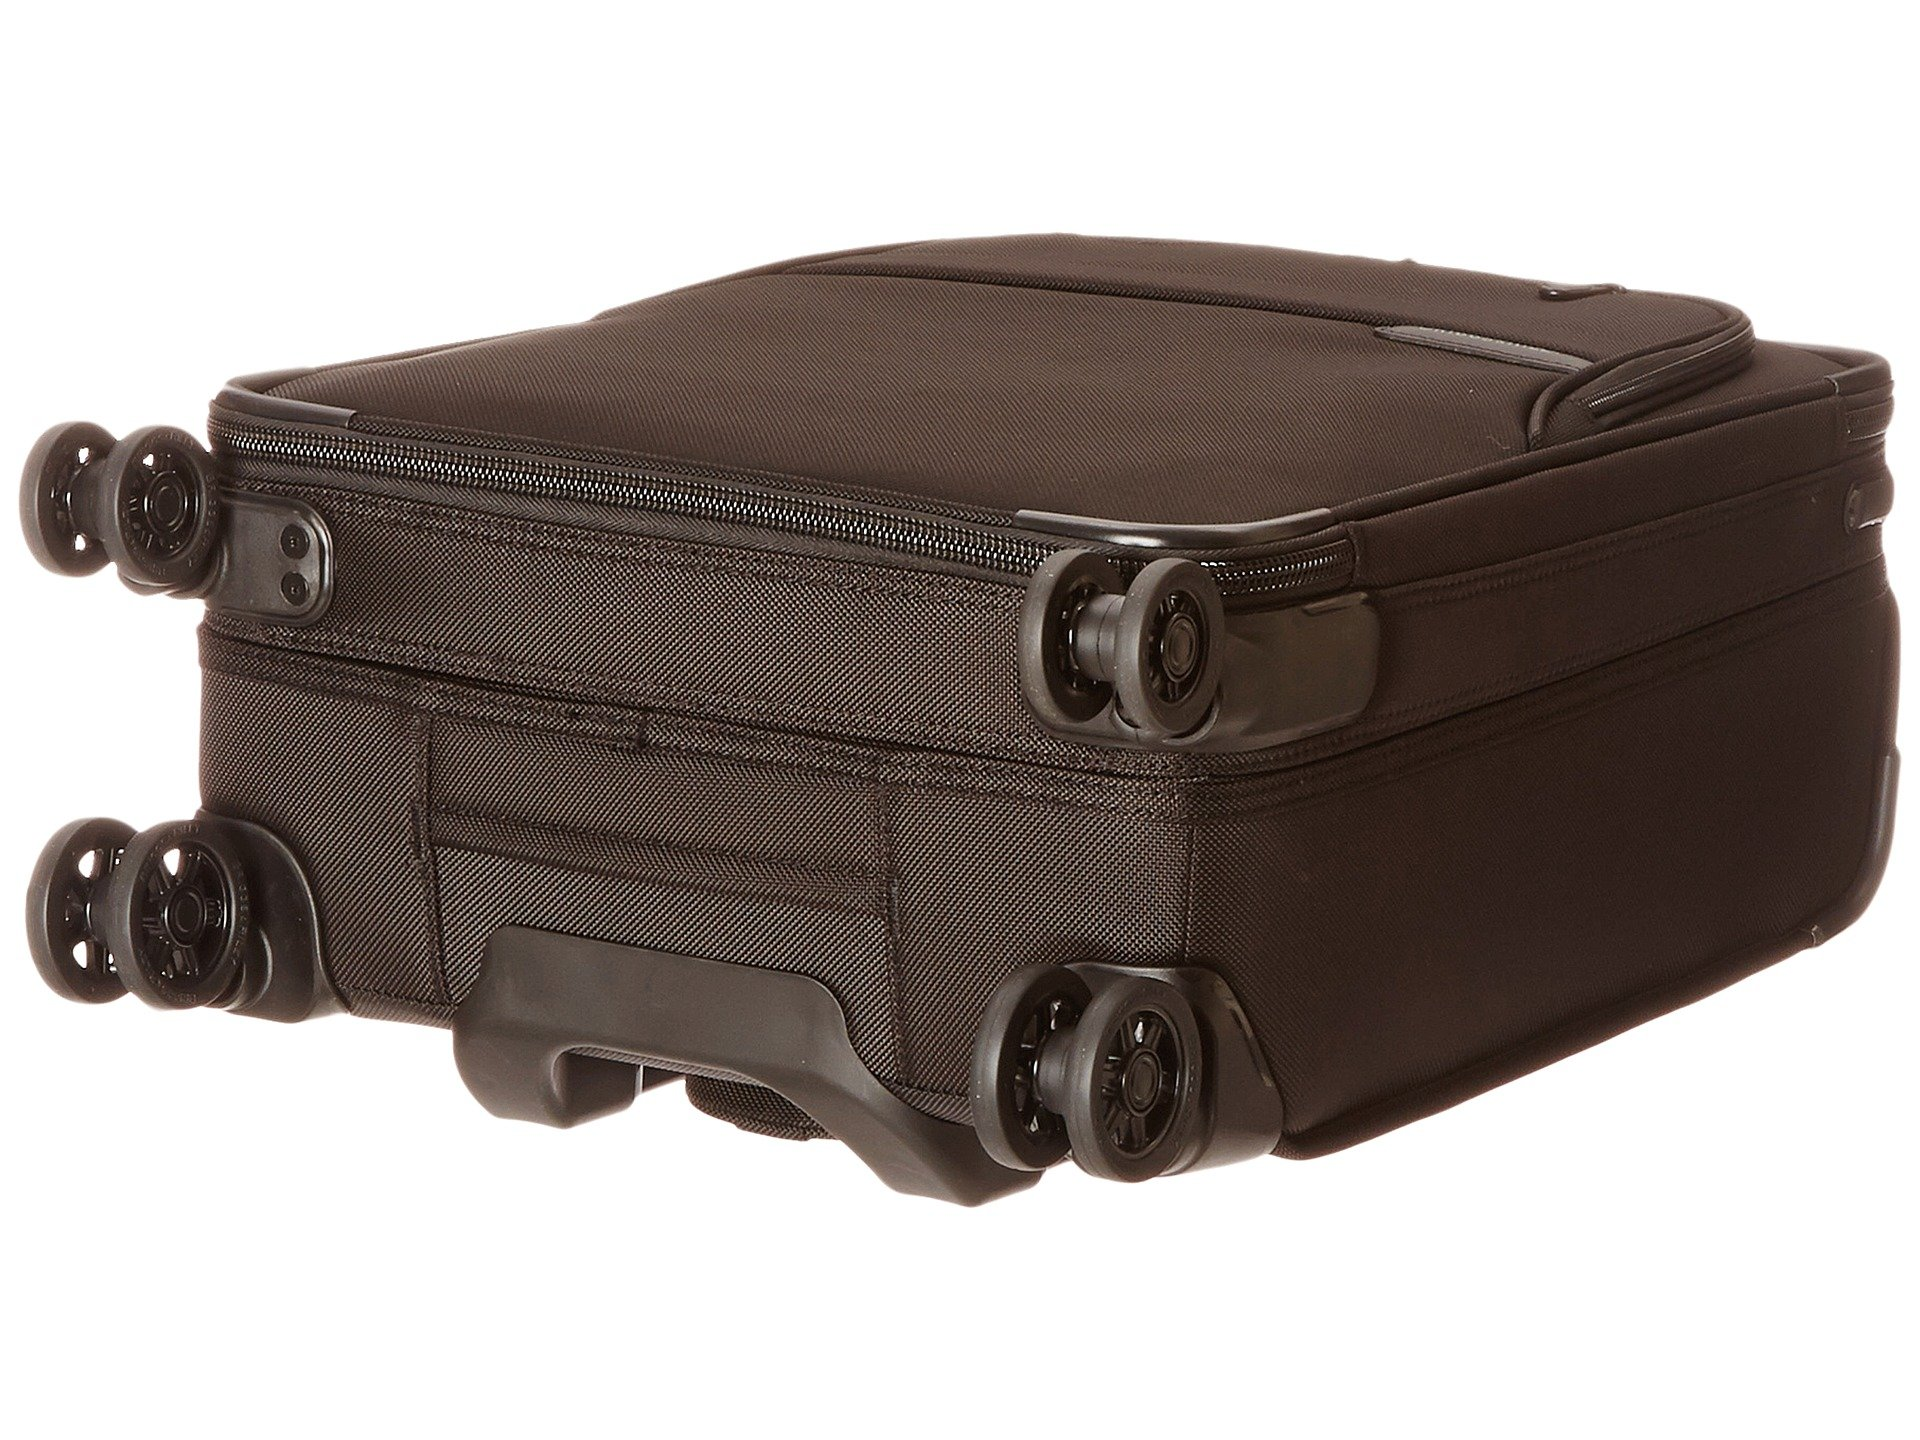 body Carry Black Riley on International Spinner Baseline Expandable Wide Briggs amp; nHFAUn